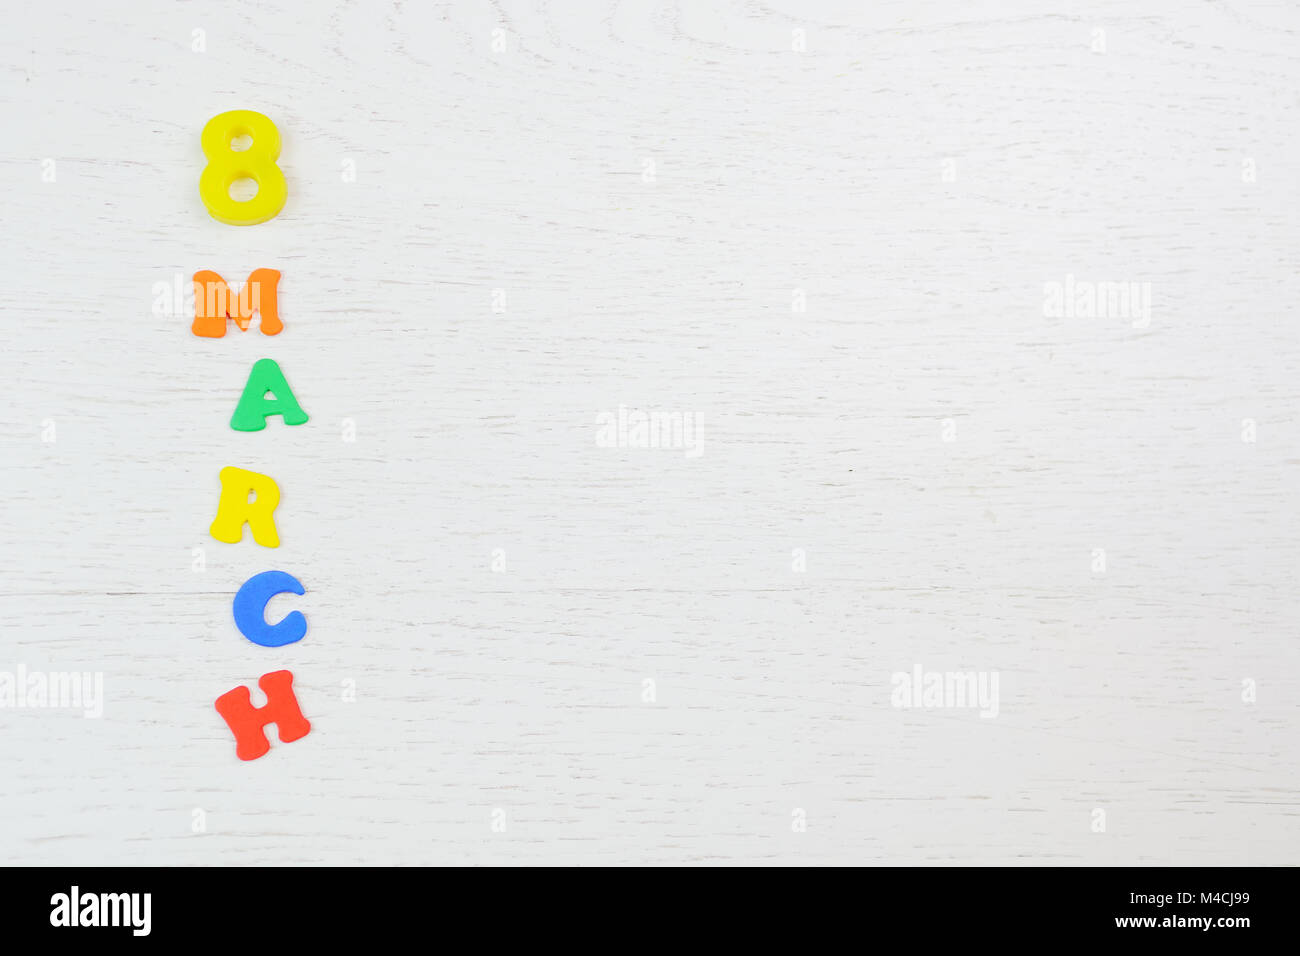 inscription on March 8 from colored letters on a white wooden background - Stock Image